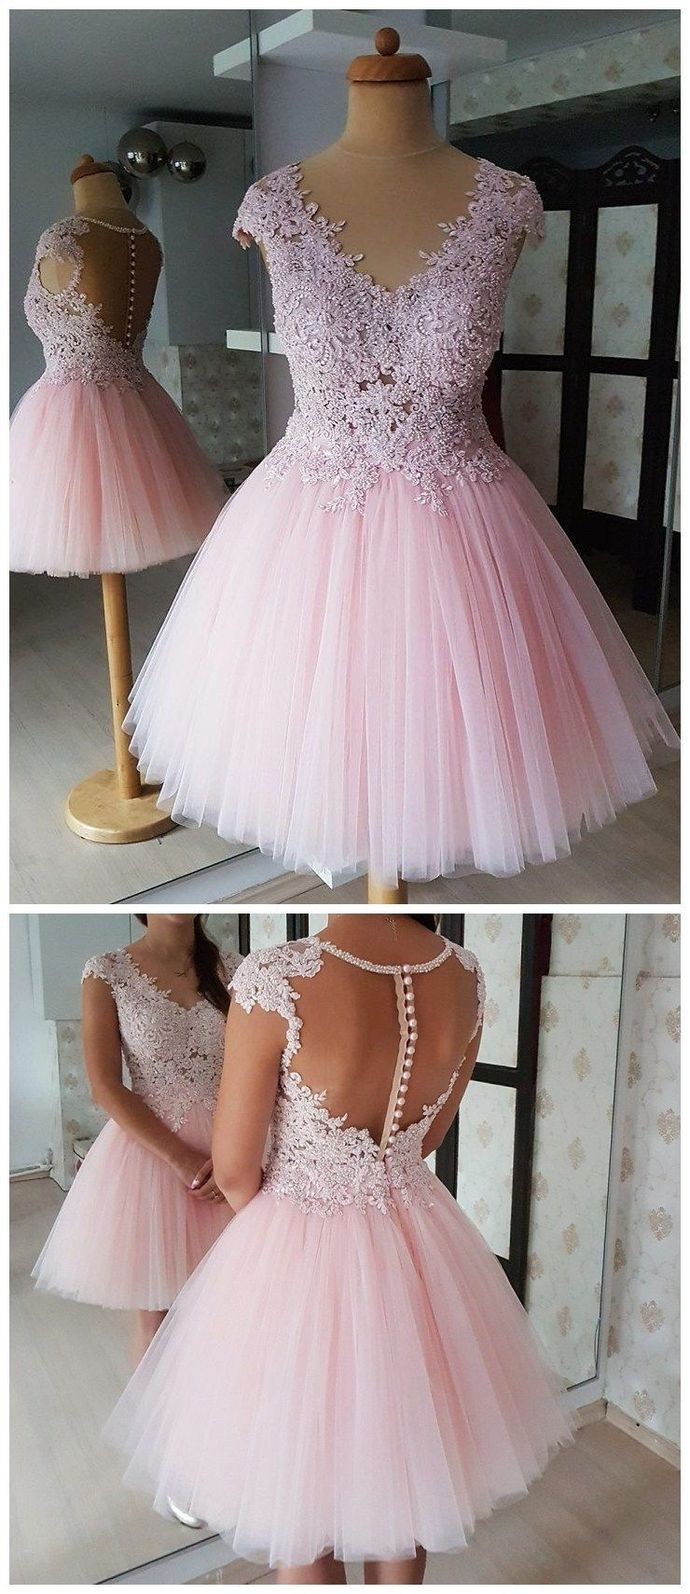 Princess Pink Short Homecoming Dress with Appliques, Sheer Back Graduation Party